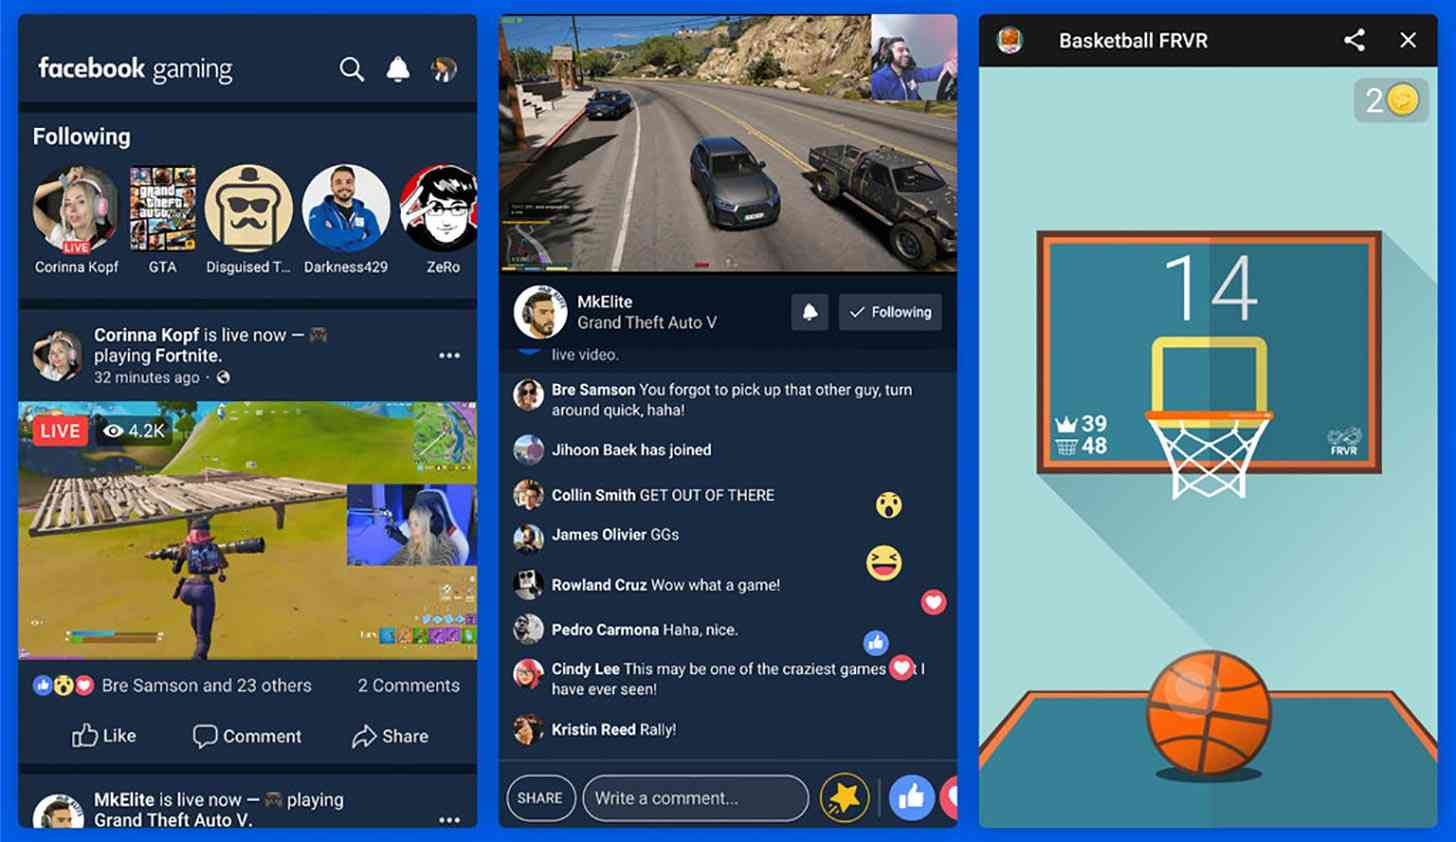 Facebook Gaming Android app